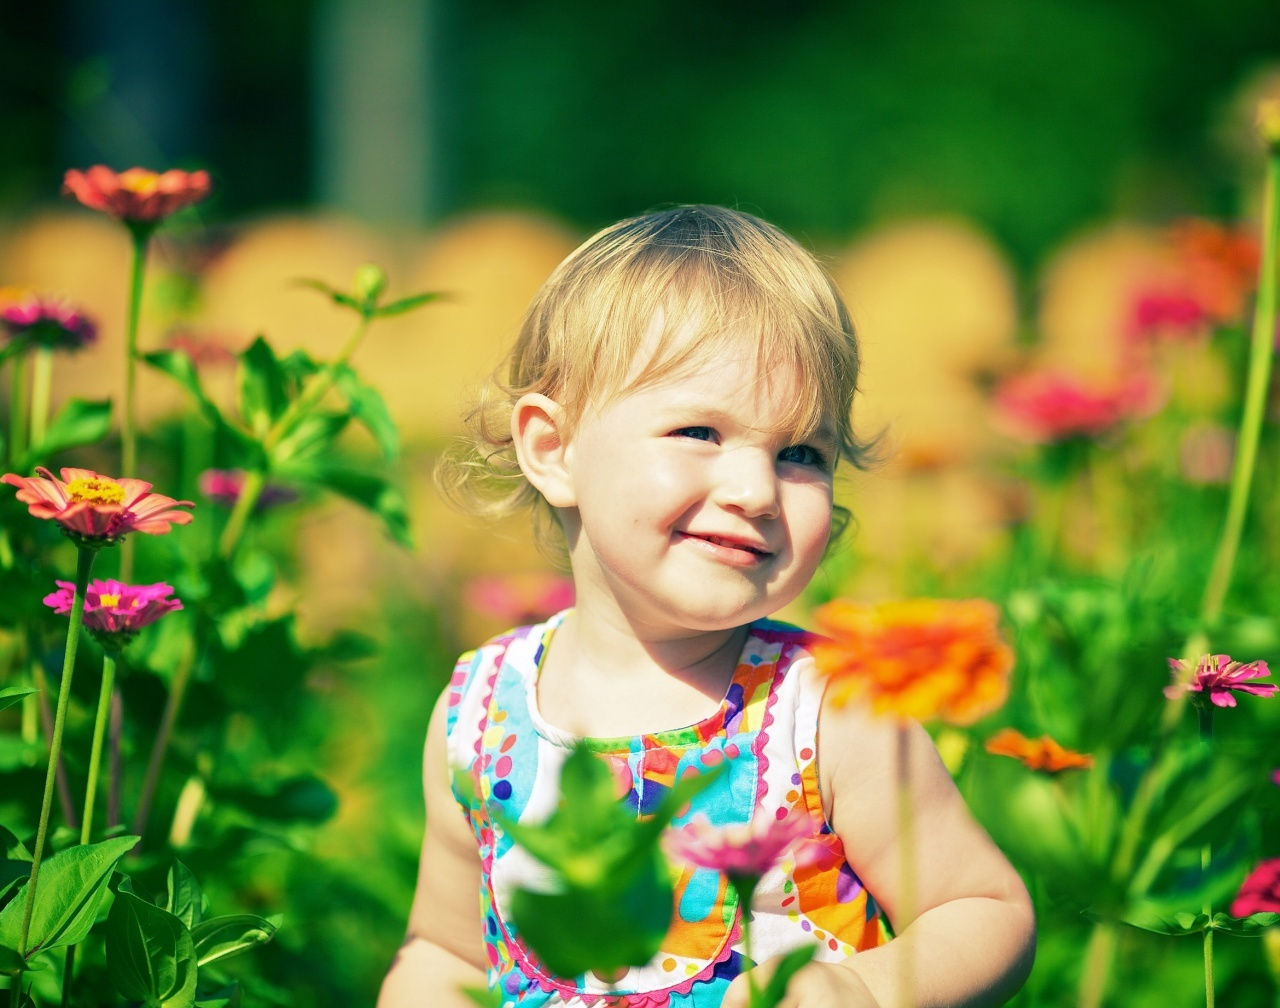 Cute Baby Wallpapers Hd Free: Jasmine In The Park